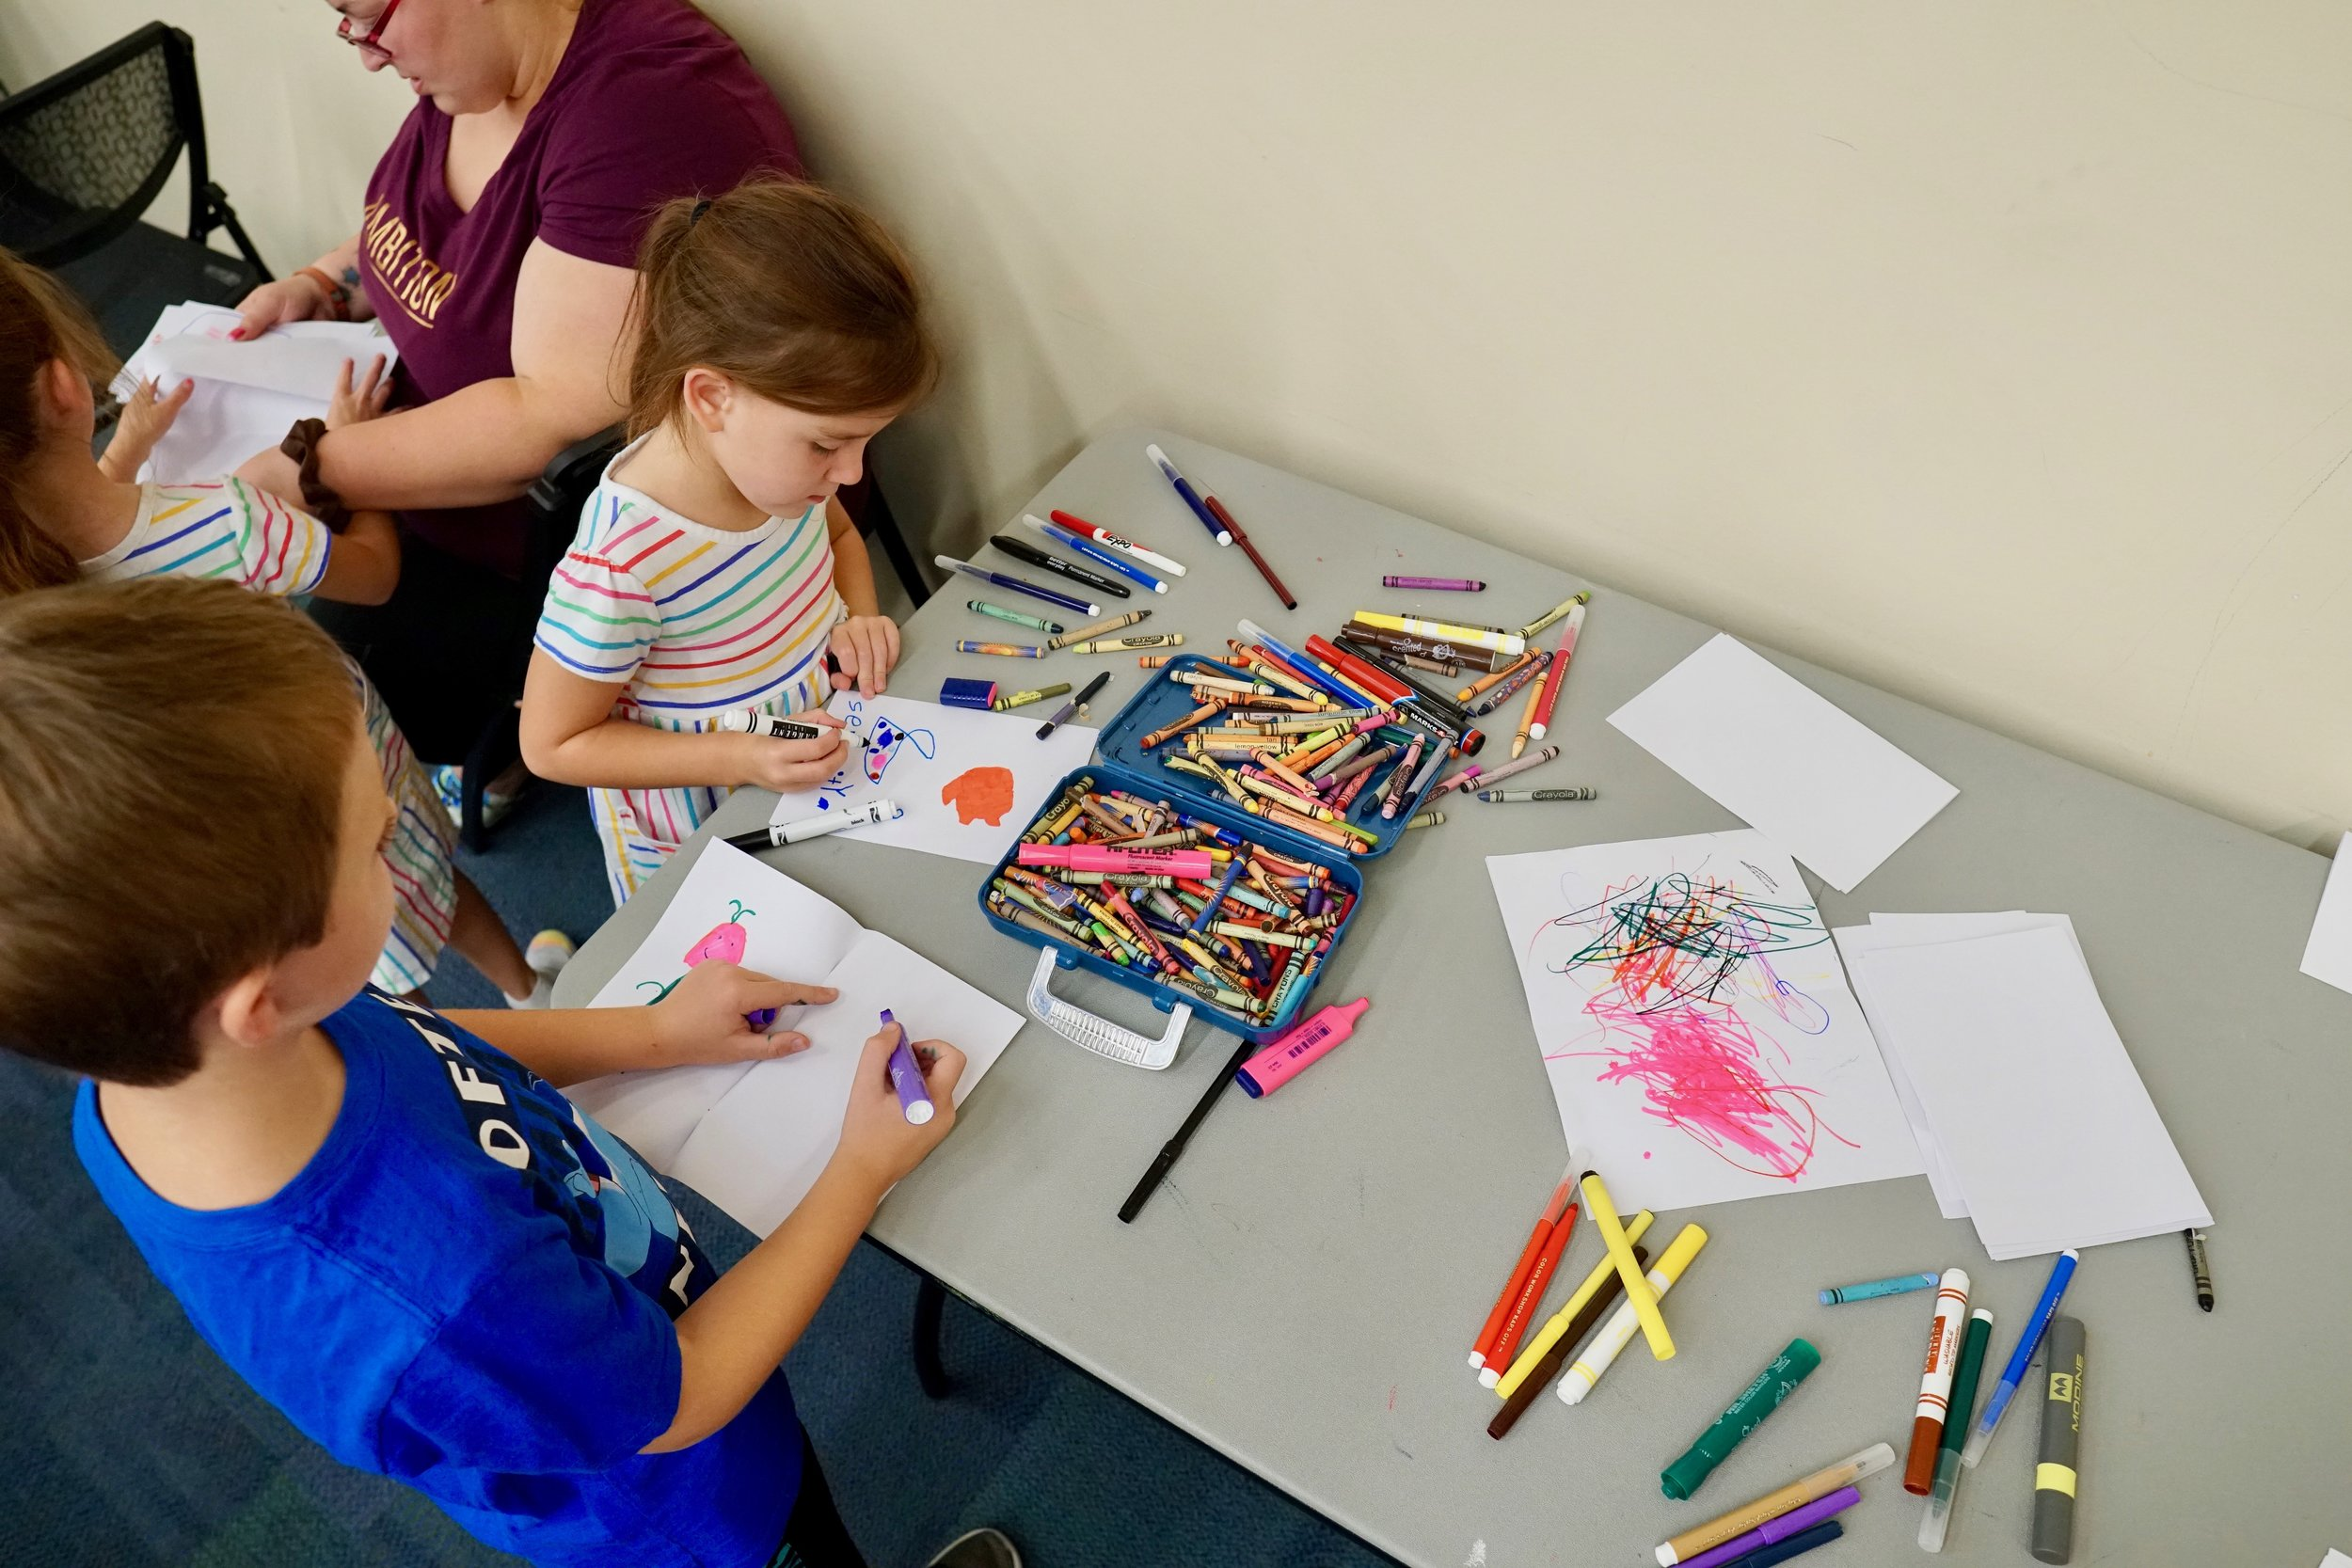 Listening and drawing at Thousand Oaks Library :-) Photo by Craig Chretien.